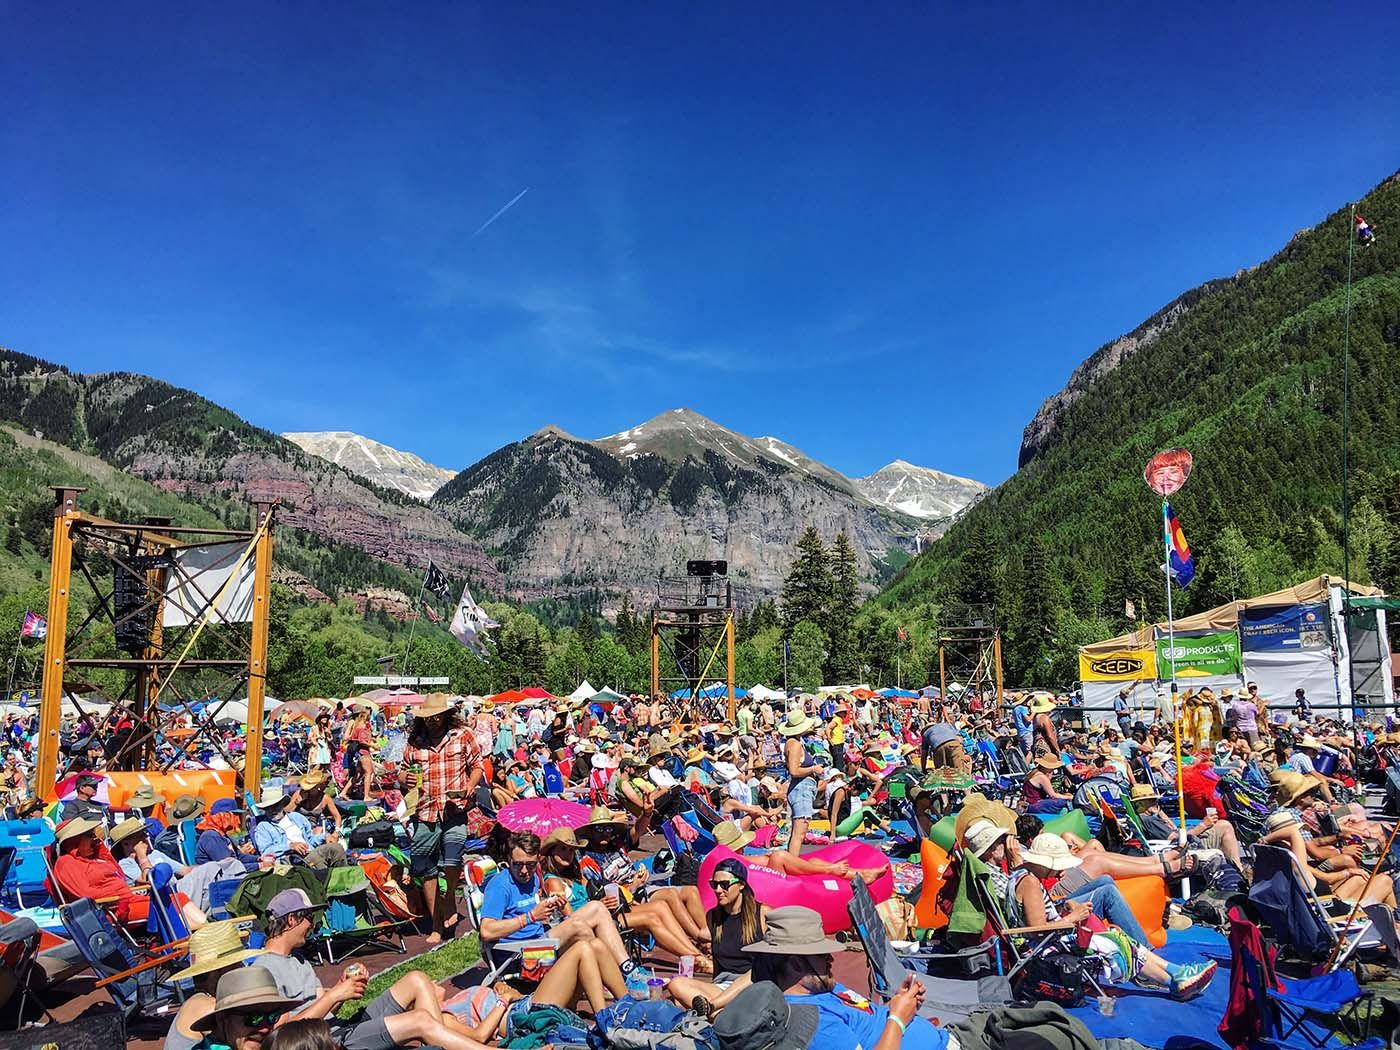 telluride bluegrass festival guide blue mountain belle in 2020 telluride bluegrass cool places to visit road trip usa pinterest